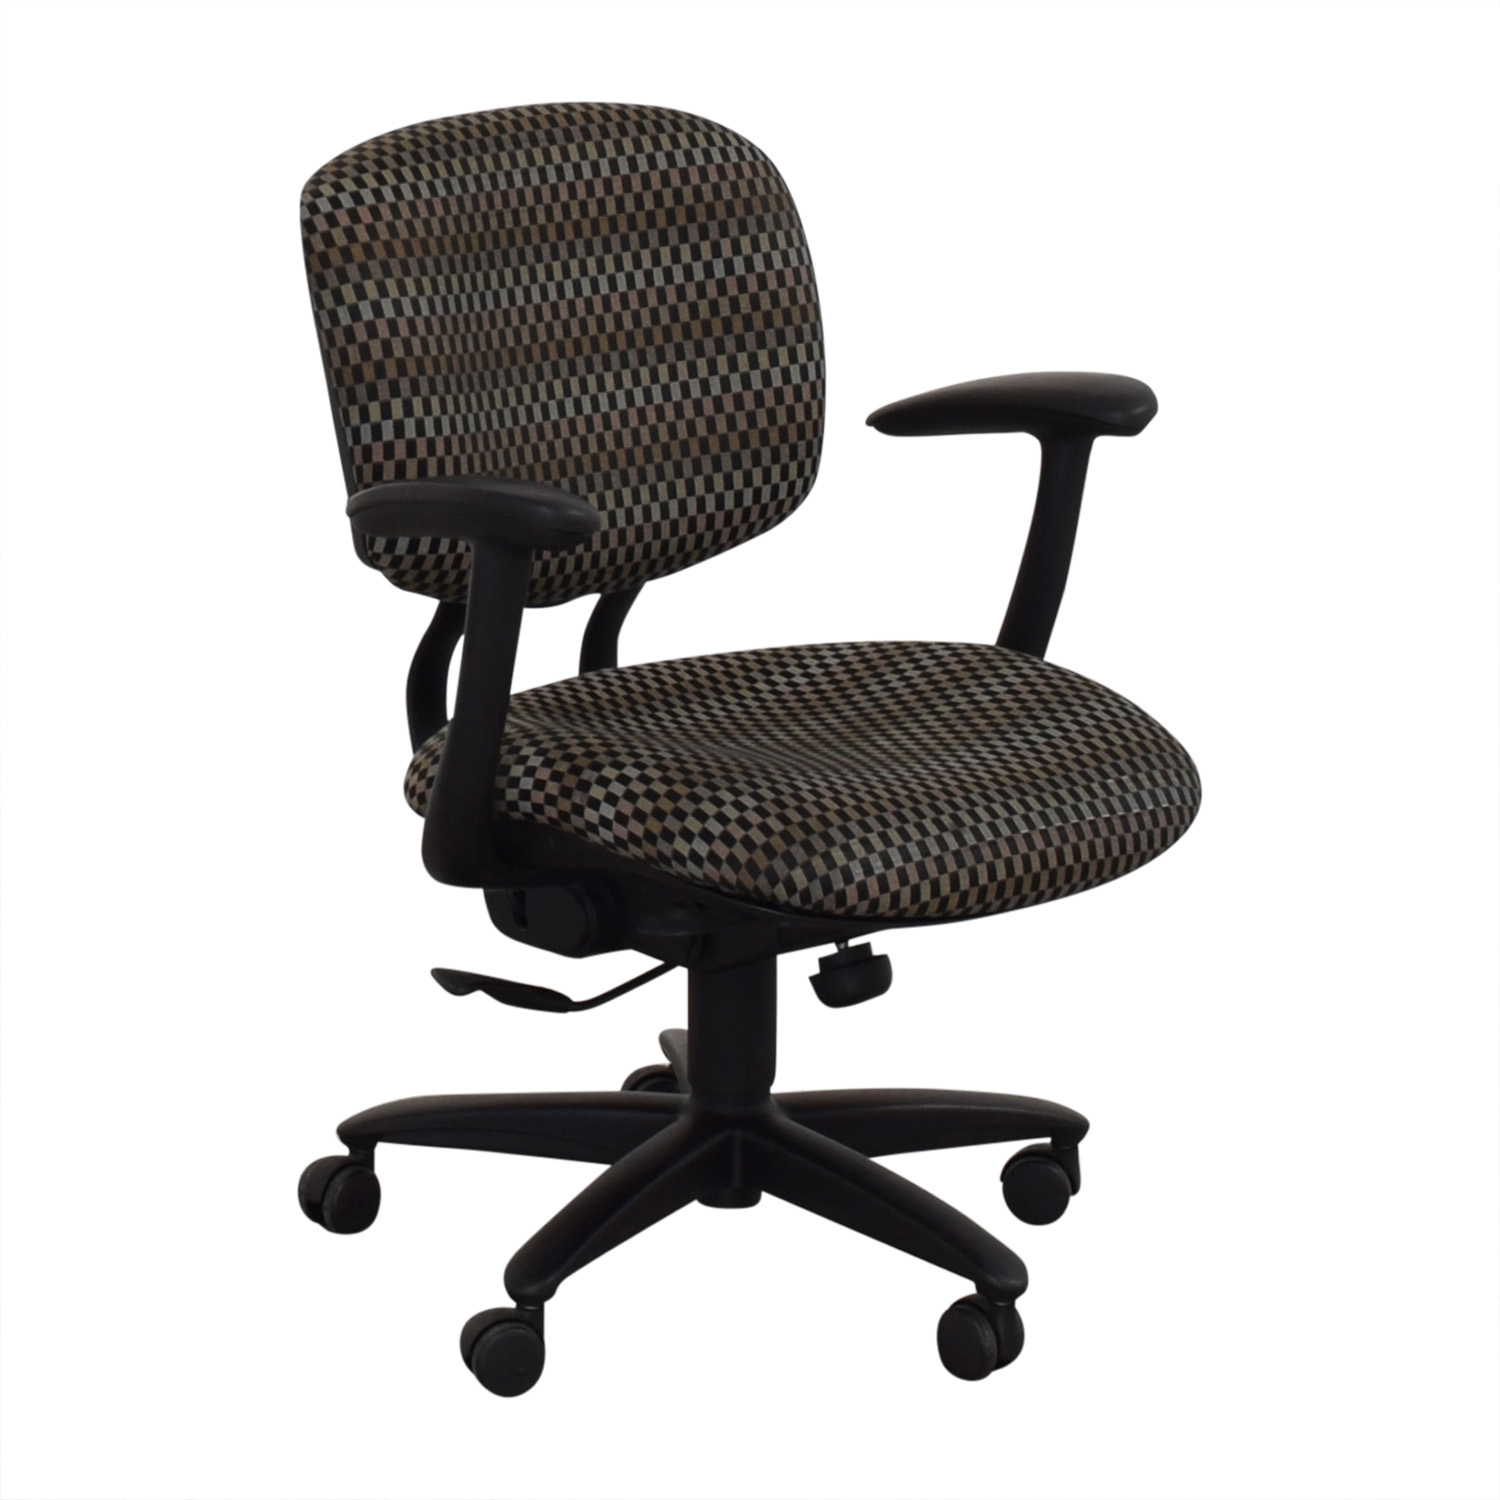 Haworth Haworth Improv Office Desk Chair Chairs